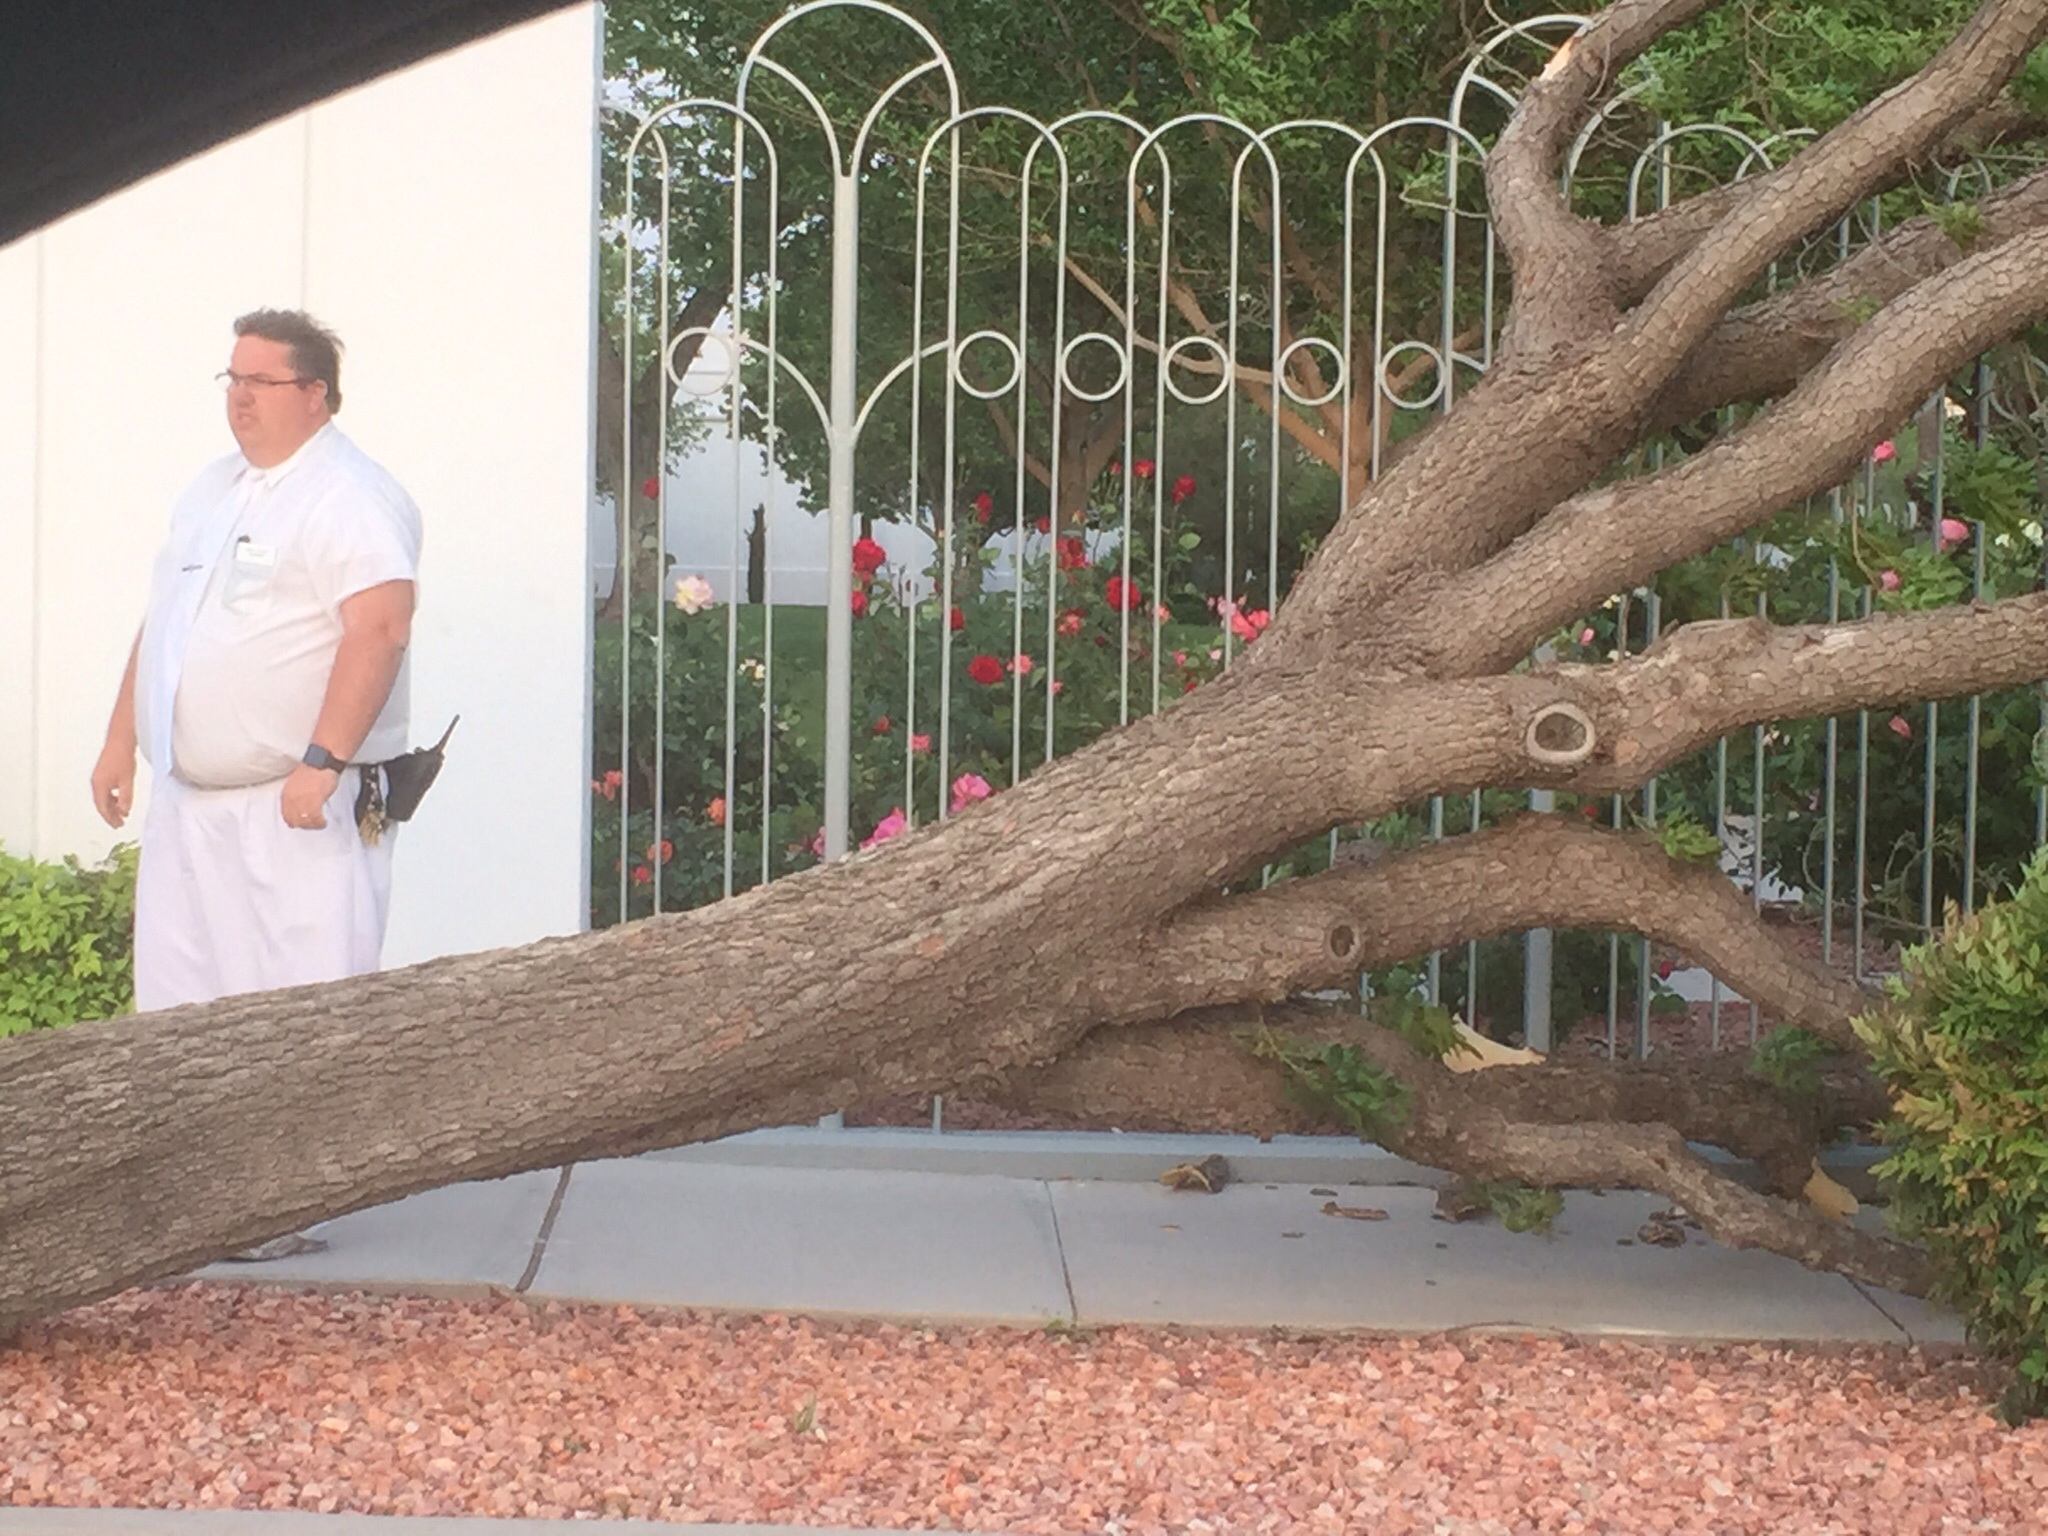 Fashion corner bountiful utah - Tree Topples At St George Temple I Took This Picture Tonight Coming Out Of The St George Temple The Fierce Winds Toppled This Tree